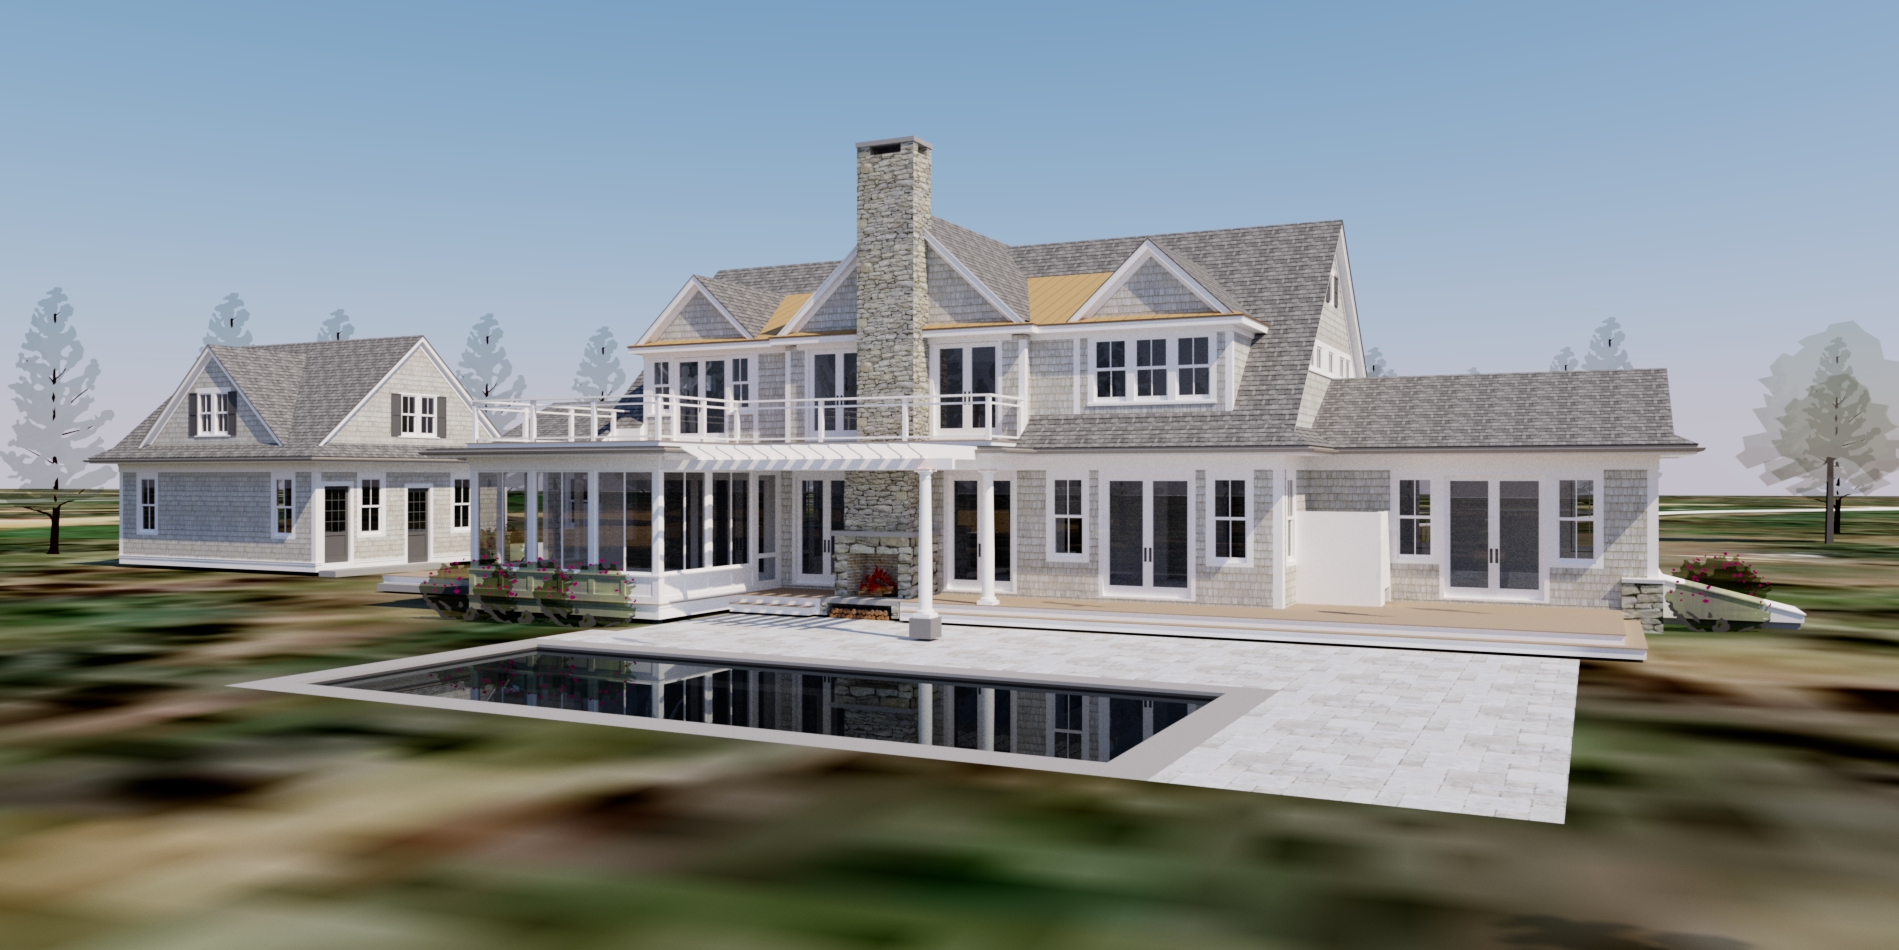 Single Family Home for Sale at Martha's Vineyard New Construction 28 West Street Edgartown, Massachusetts, 02539 United States